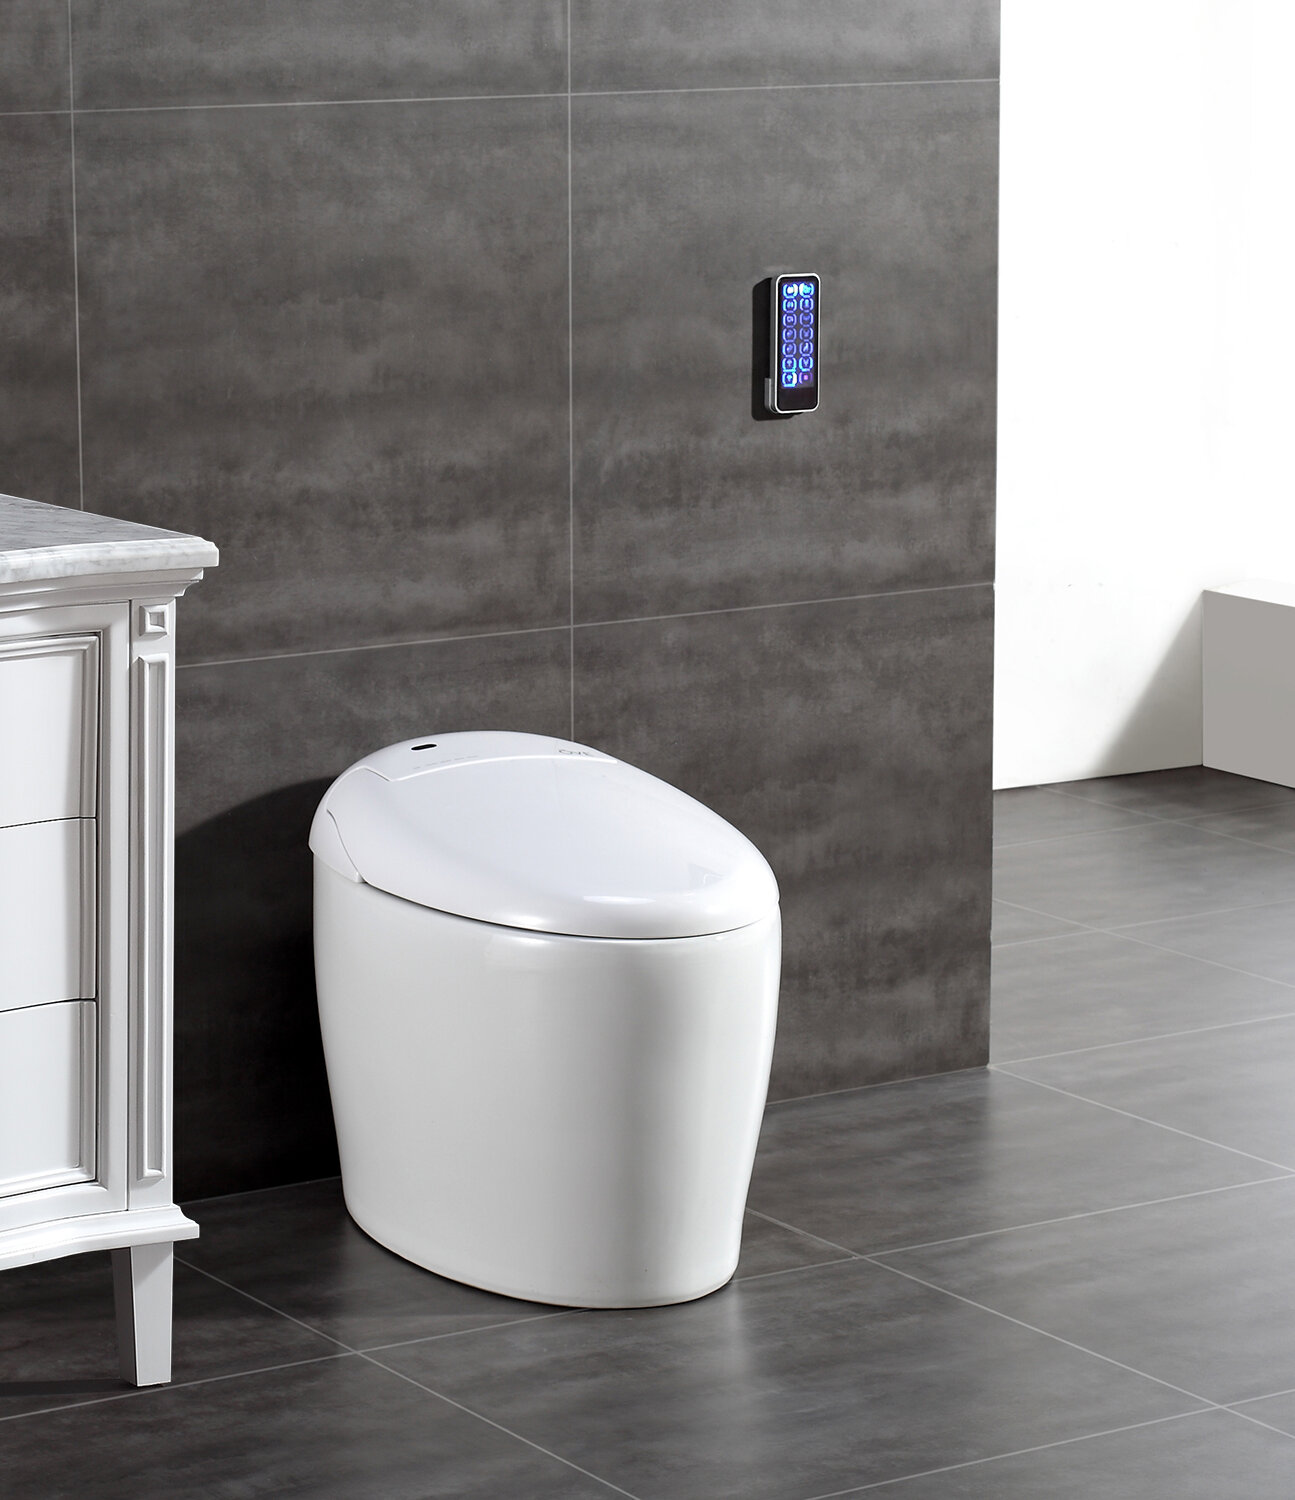 Ove Decors Tuva Smart Toilet 20\